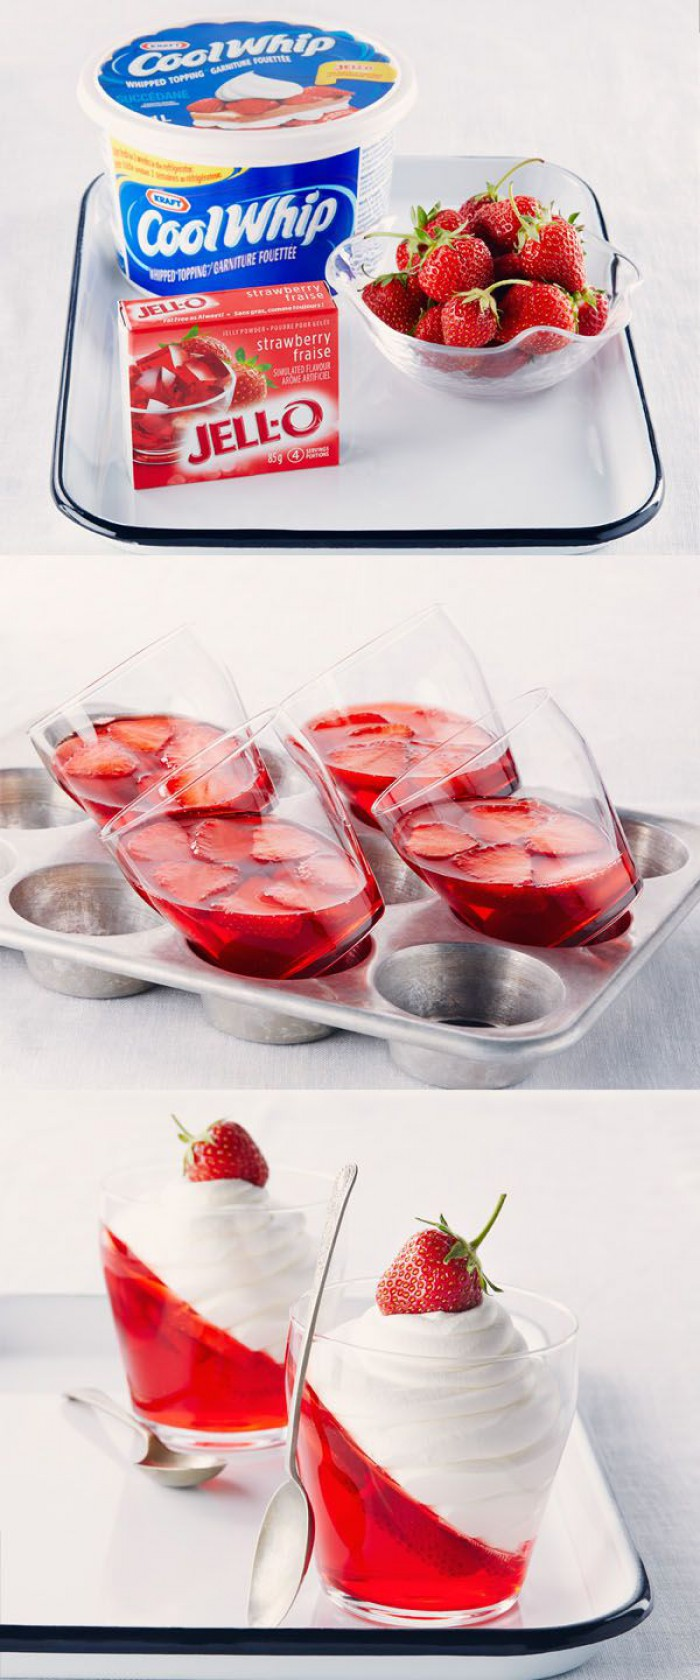 Strawberry Jelly With Real Strawberries and Whipped Cream